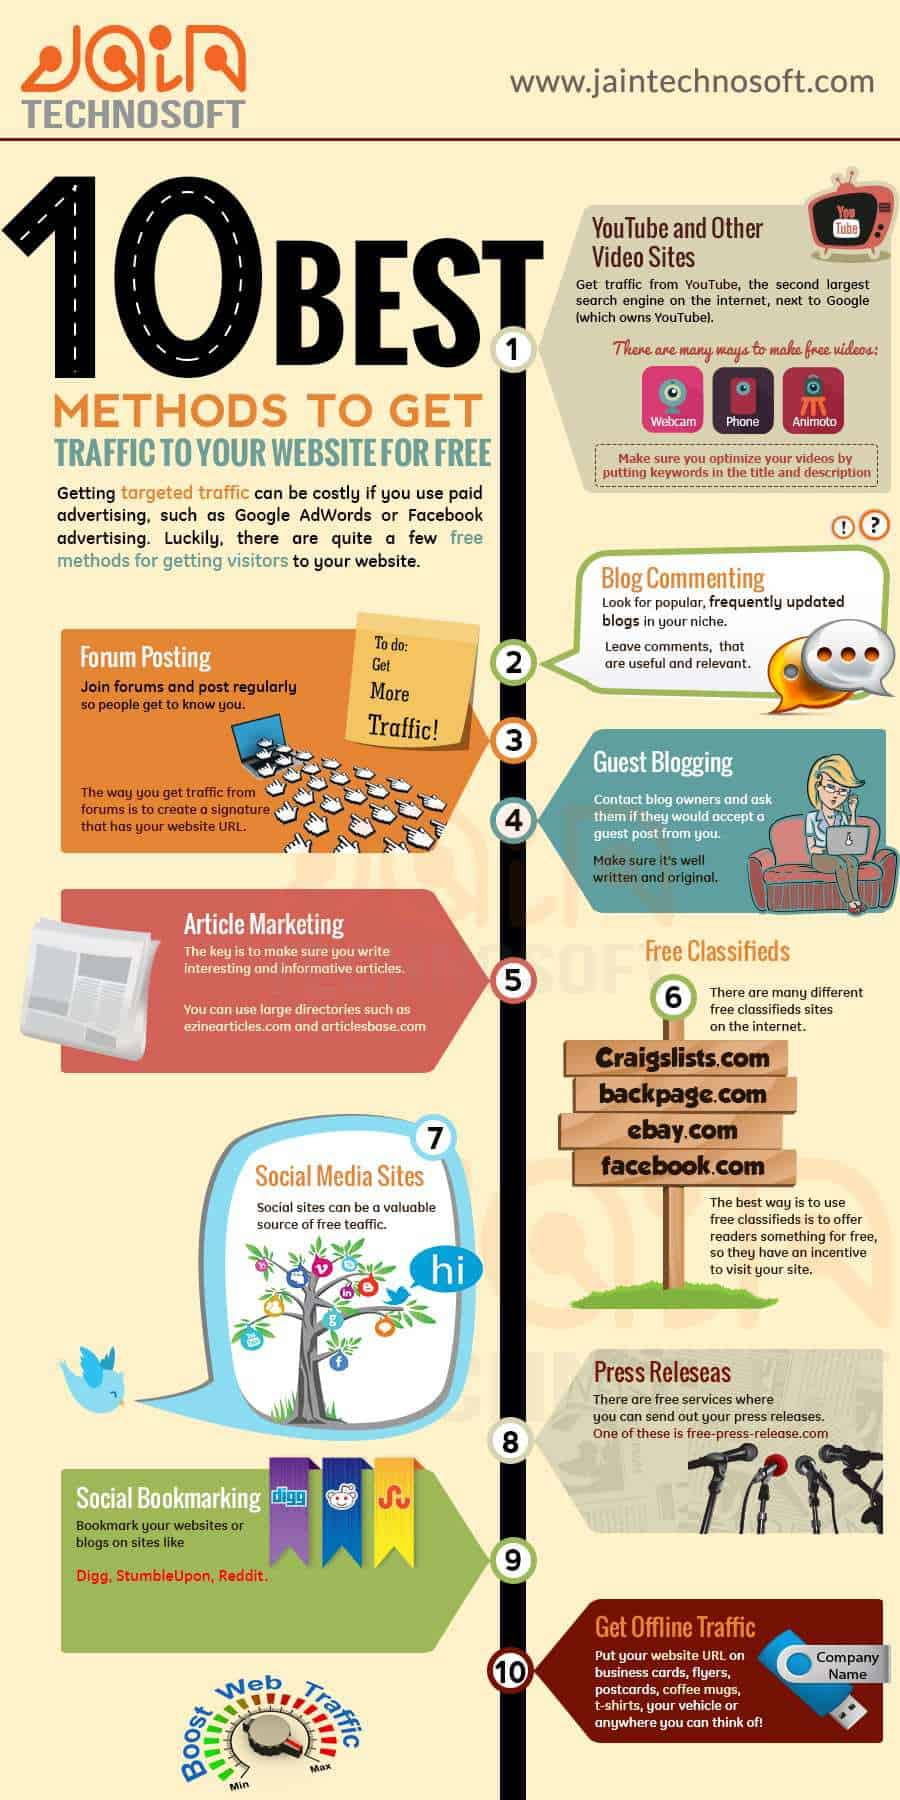 For more tips on how to drive traffic to your website, check out this great infographic.